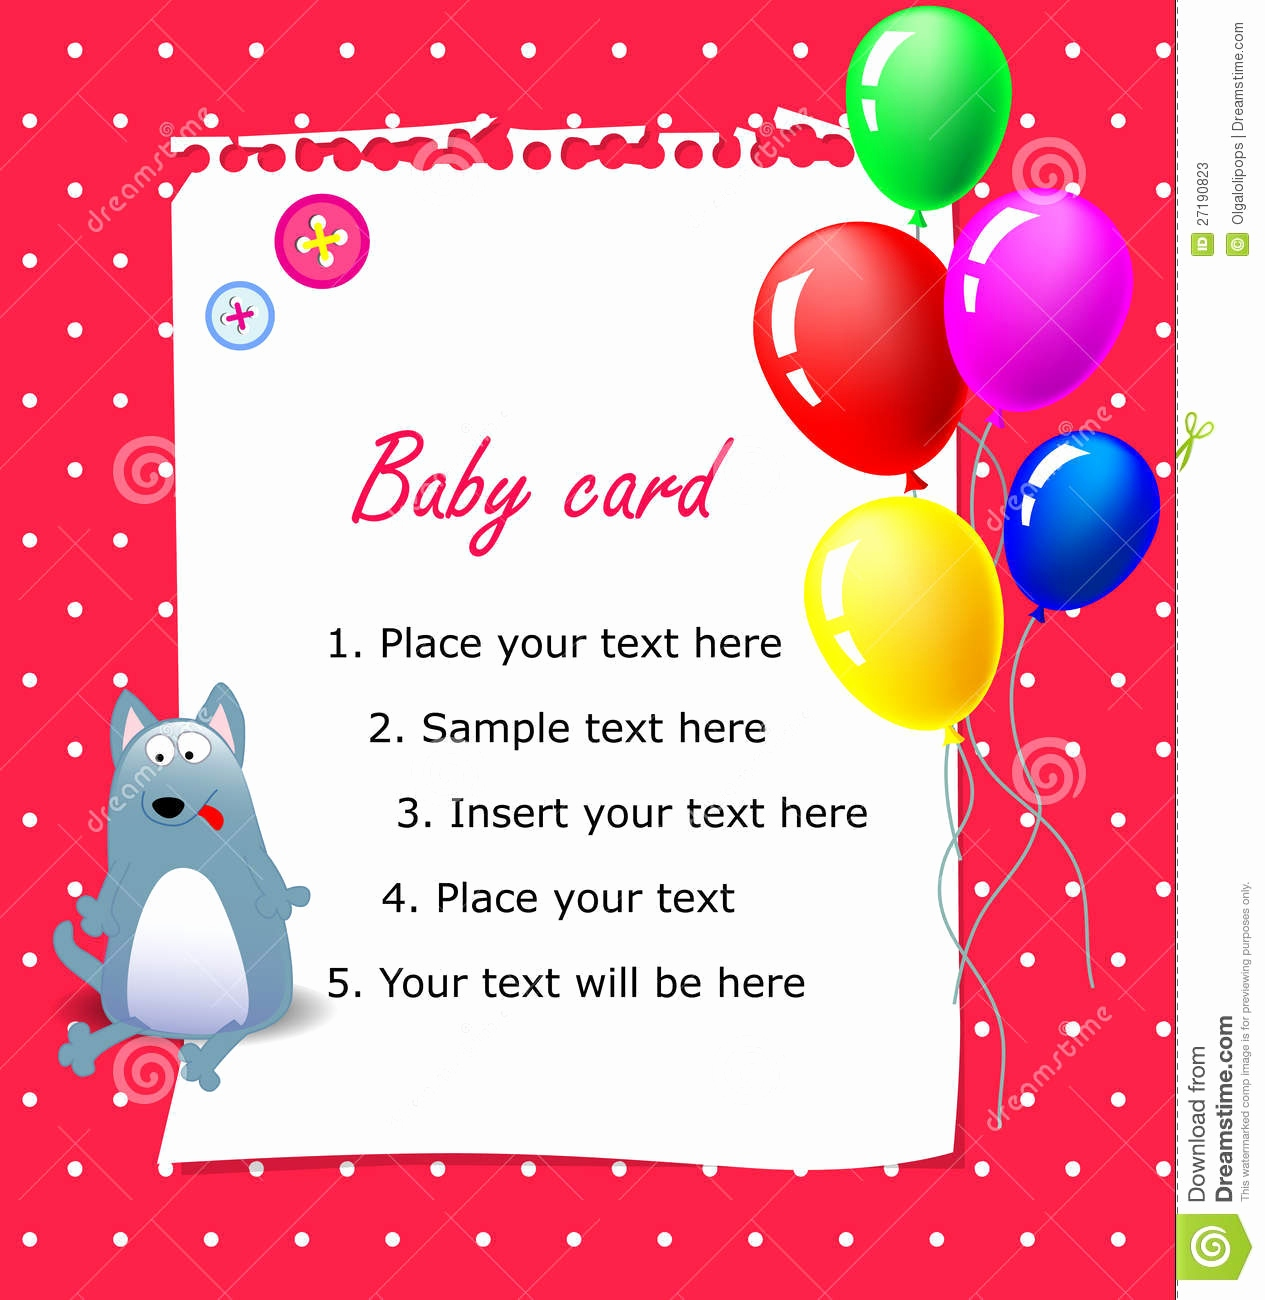 baby birthday card design ; baby-birthday-cards-new-baby-happy-birthday-card-pink-stock-vector-image-of-baby-birthday-cards